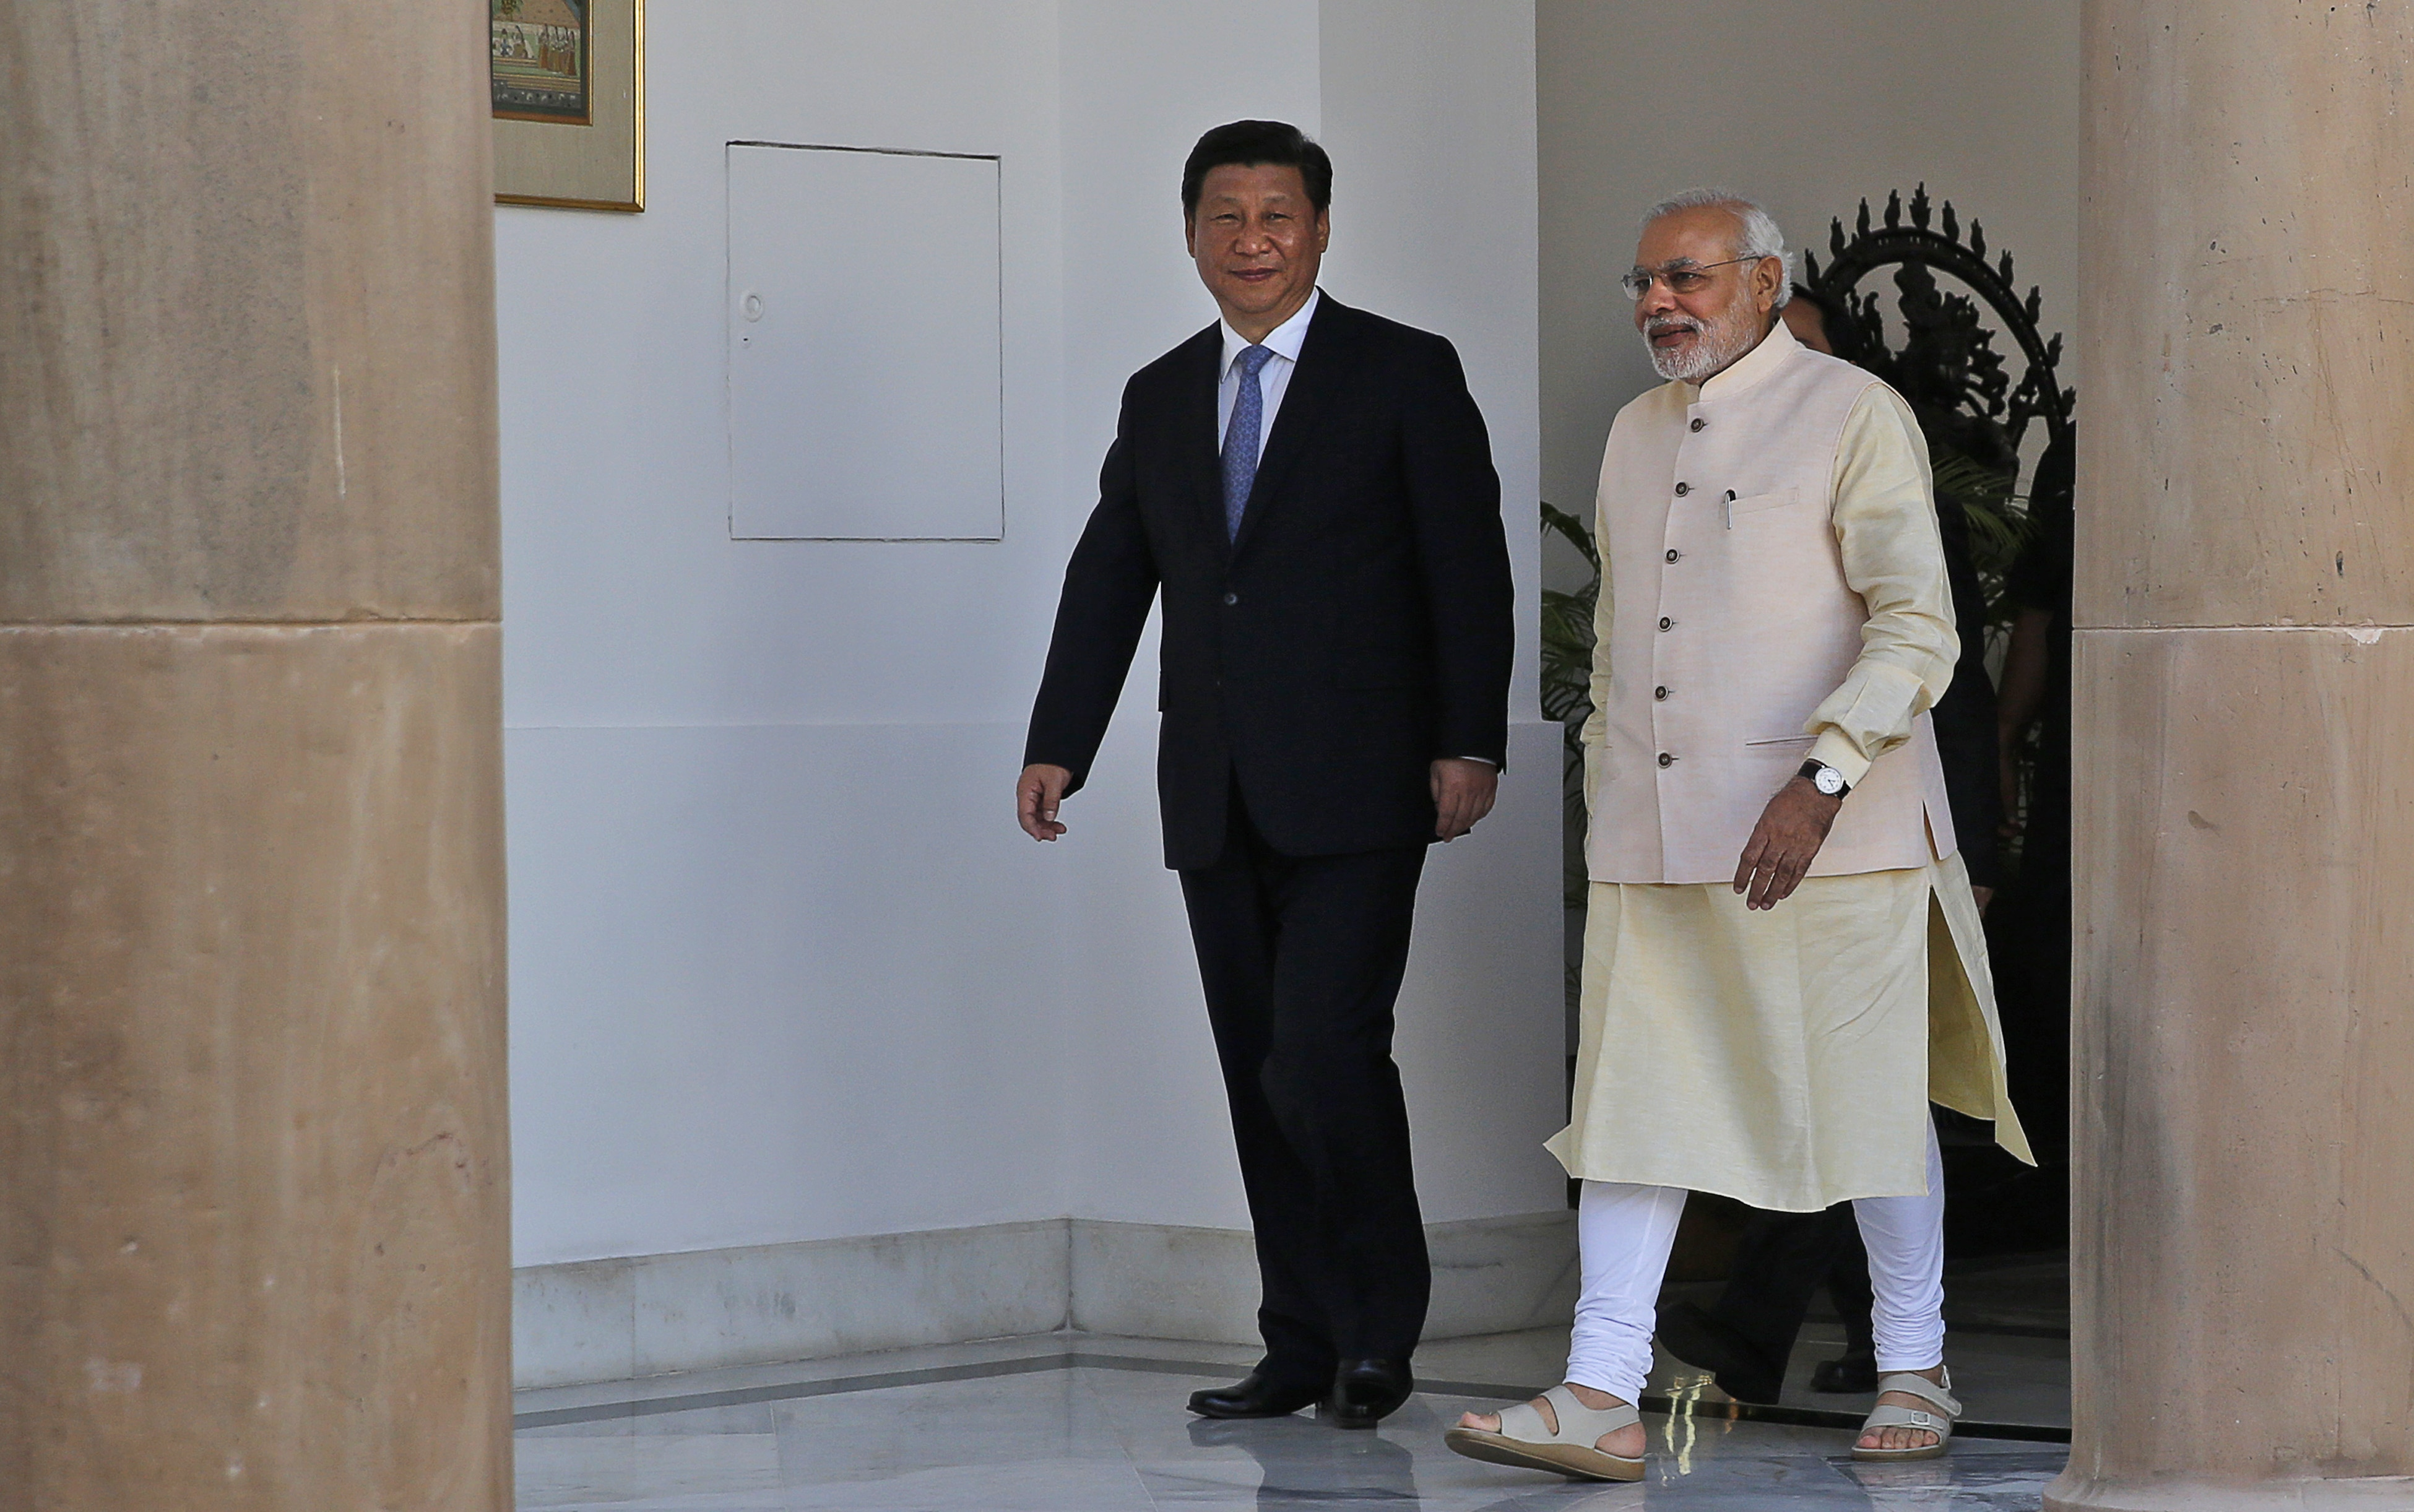 Indian Prime Minister Narendra Modi and visiting Chinese President Xi Jinping walk for a meeting in New Delhi, India, Thursday, Sept. 18, 2014.